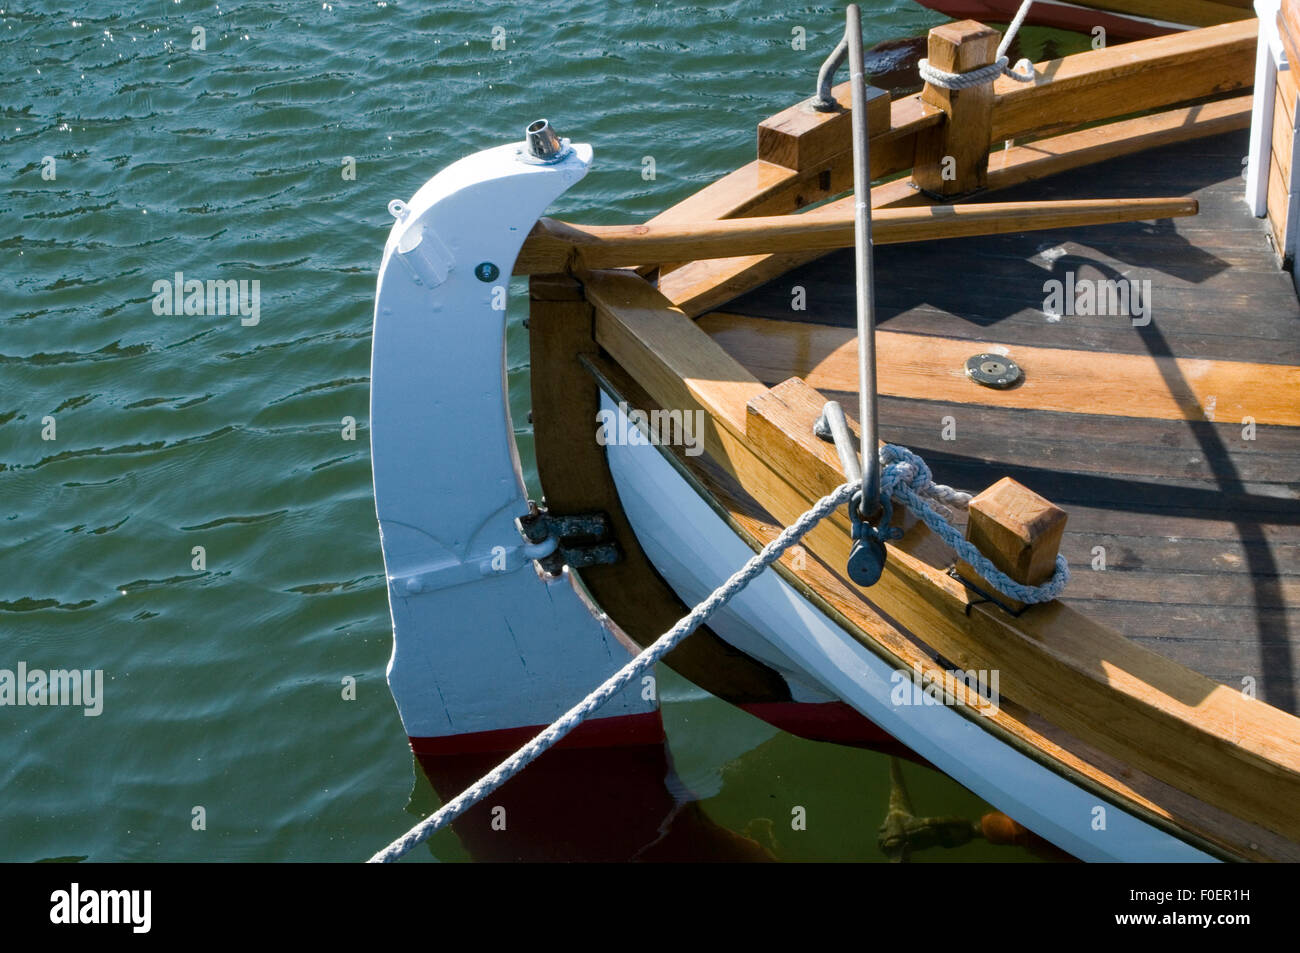 Boat Tiller Stock Photos & Boat Tiller Stock Images - Alamy